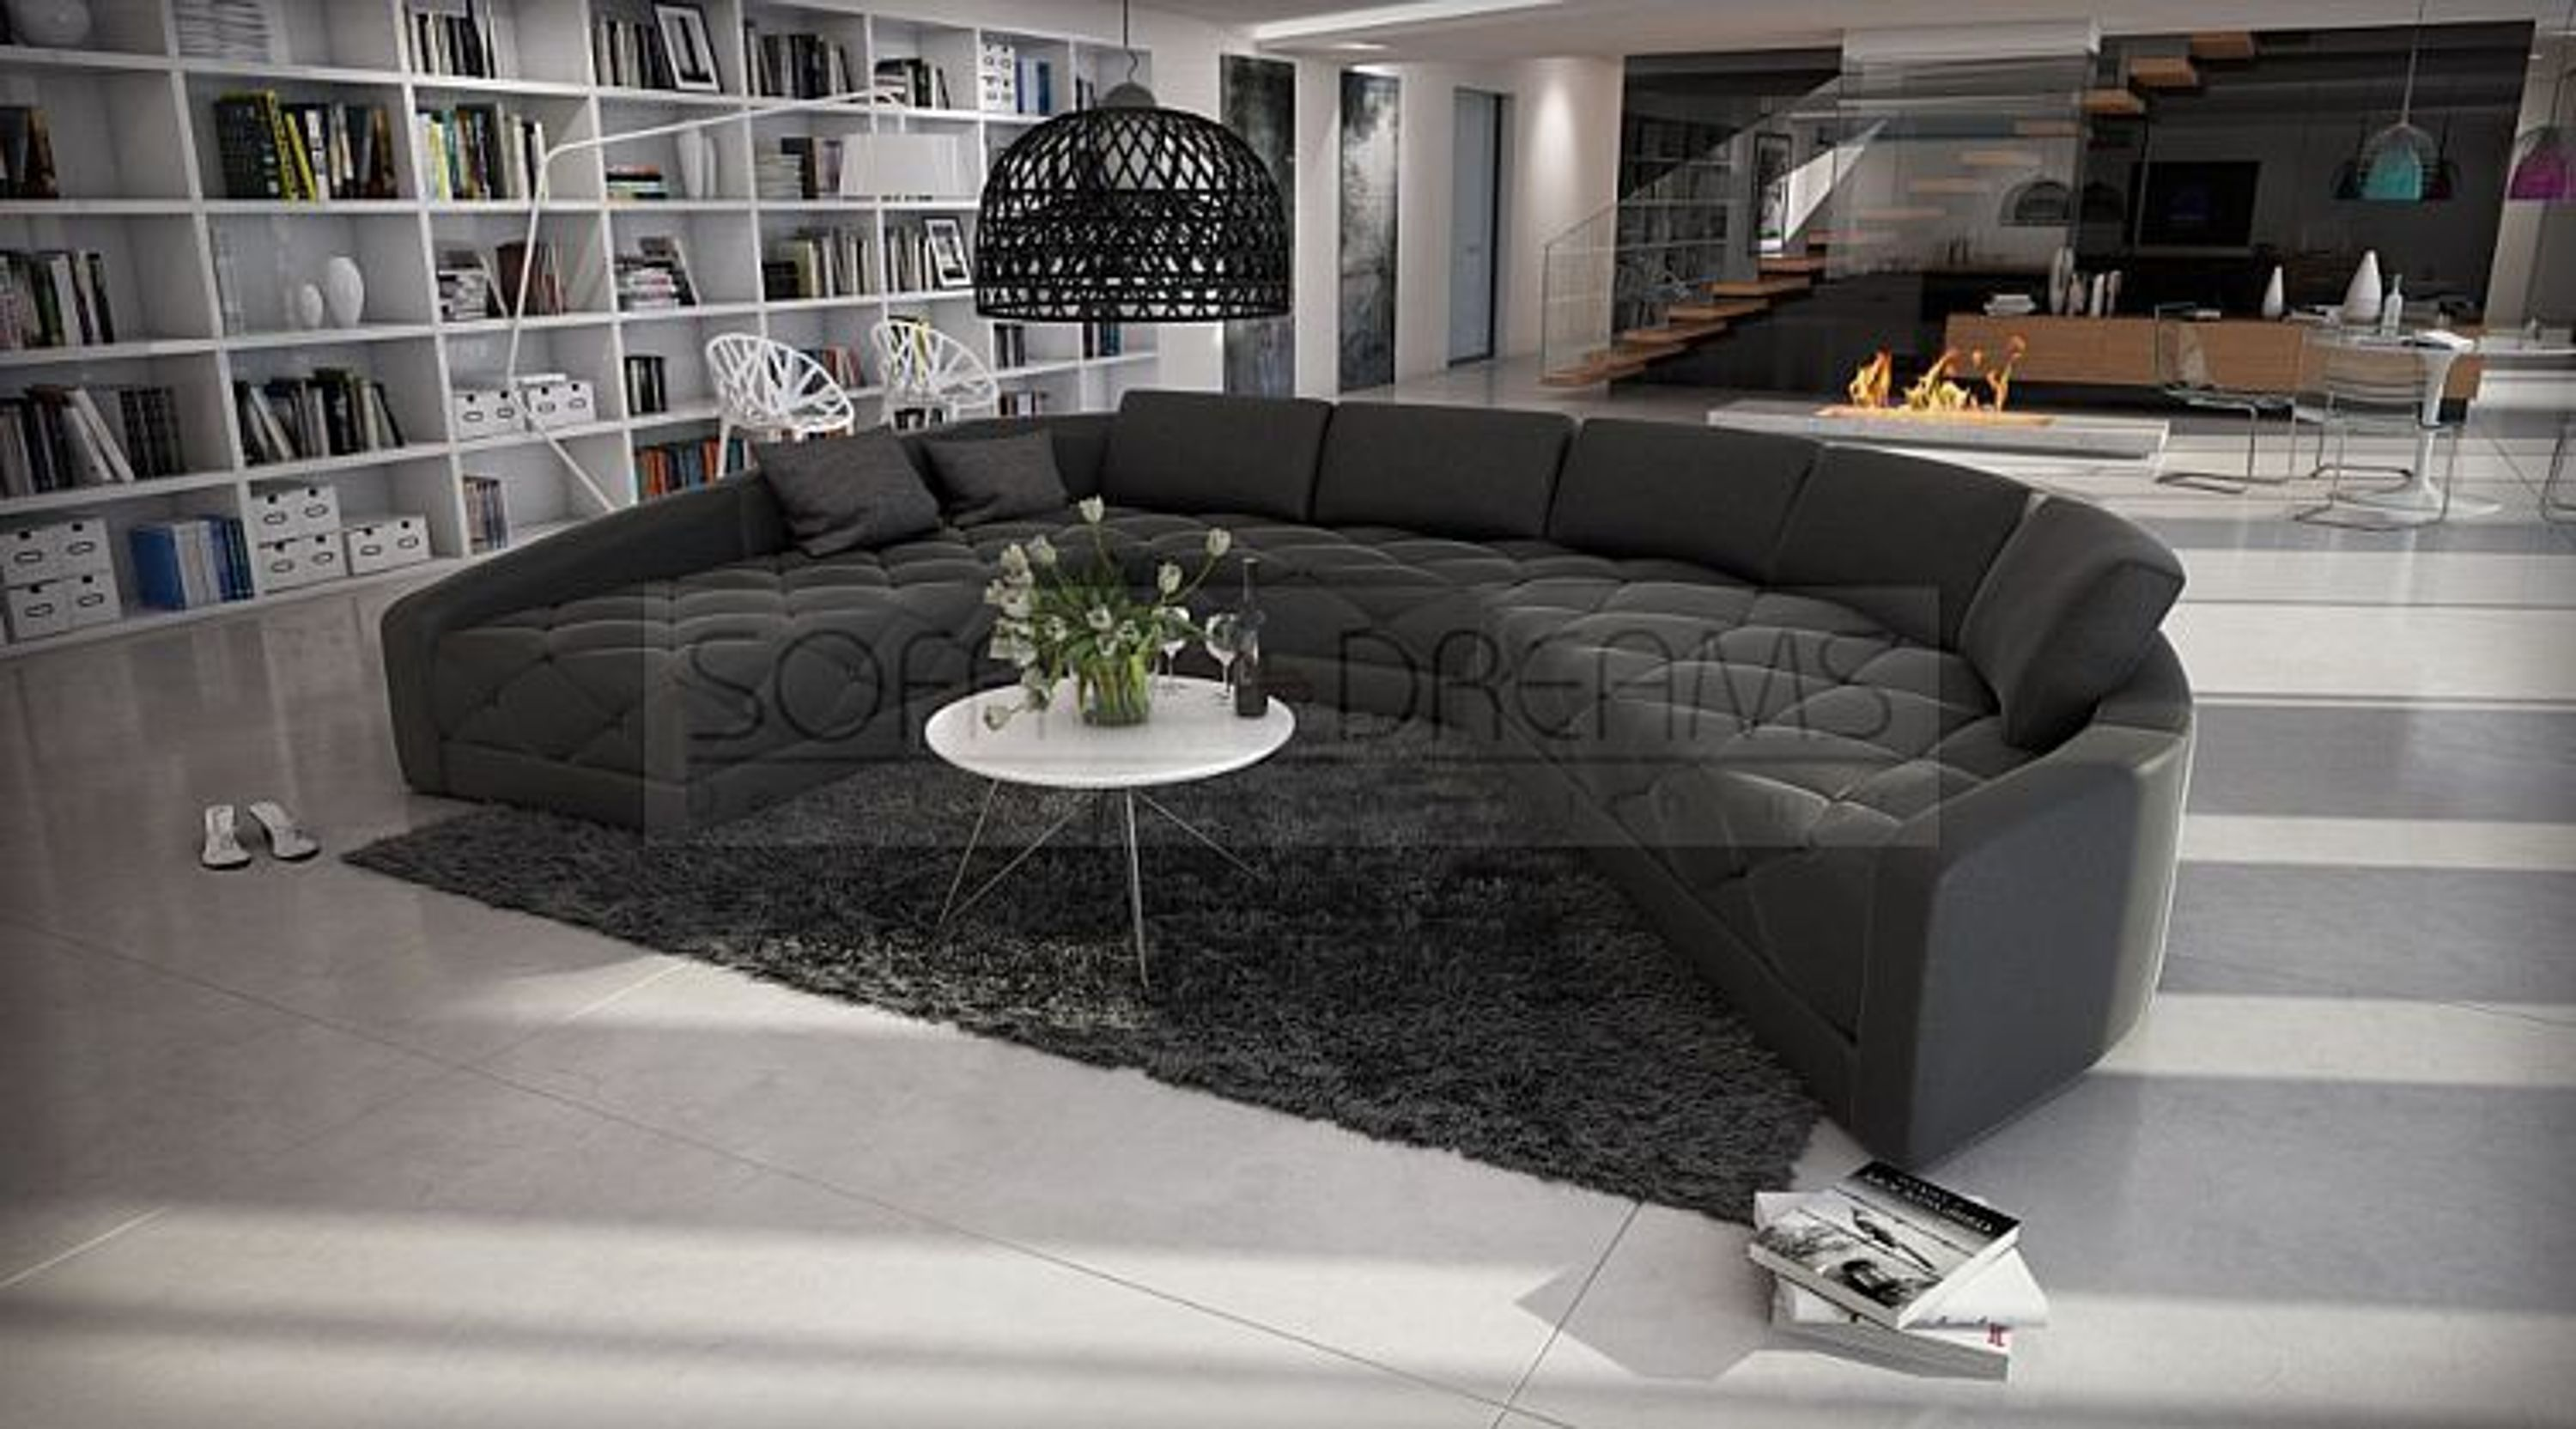 rundsofa secreto gesteppte sitzflaechen designersofa luxuscouch kaufen bei. Black Bedroom Furniture Sets. Home Design Ideas